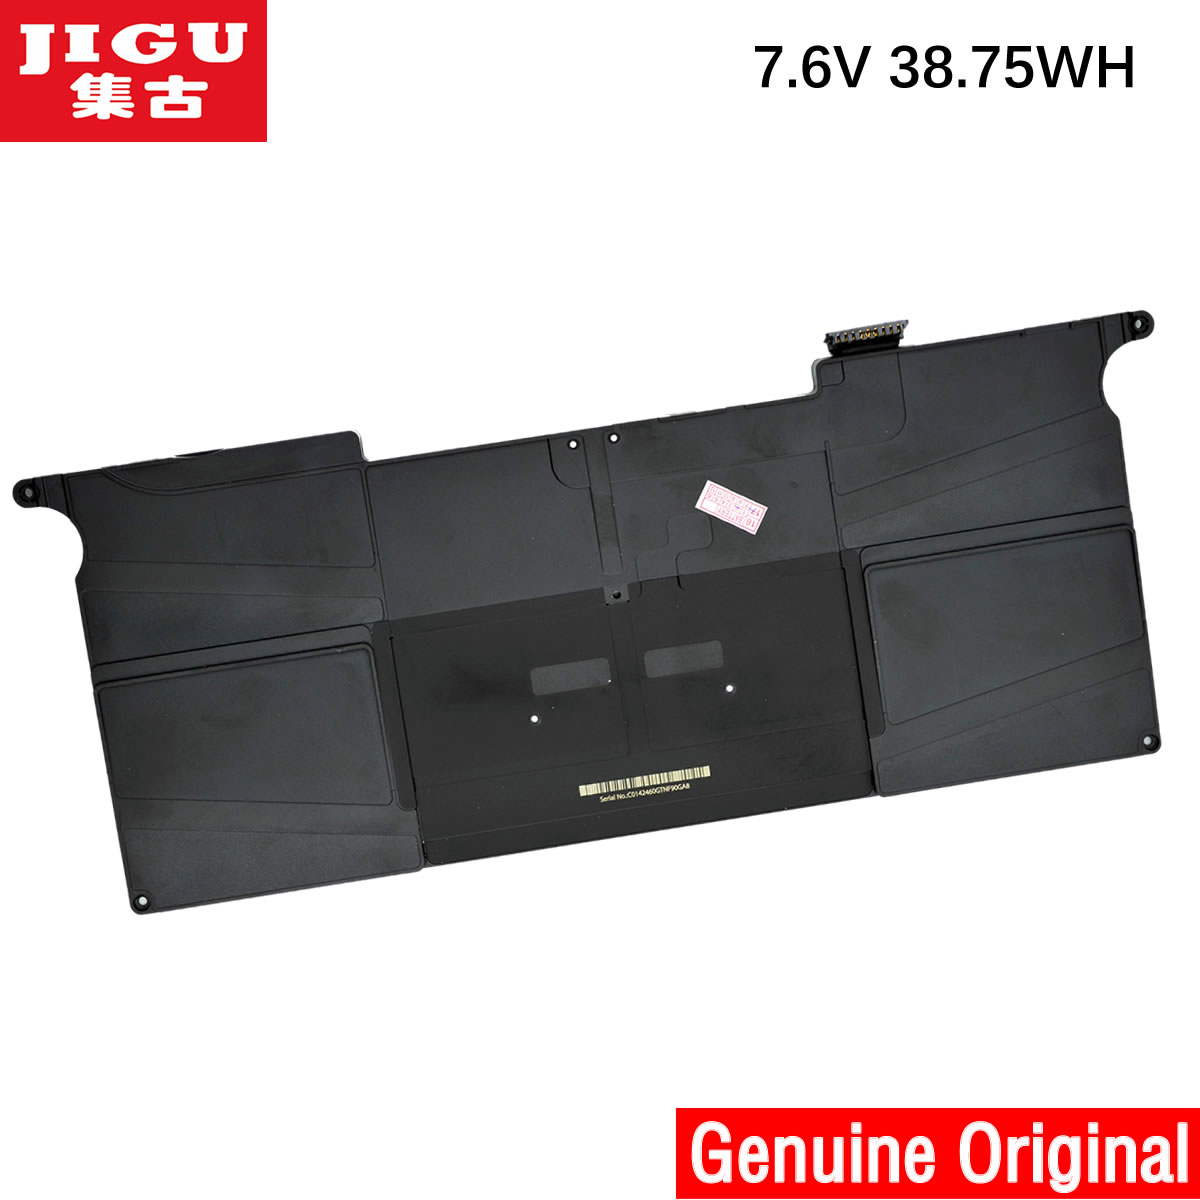 JIGU New Laptop <font><b>Battery</b></font> For Apple <font><b>MacBook</b></font> <font><b>Air</b></font> <font><b>11</b></font>